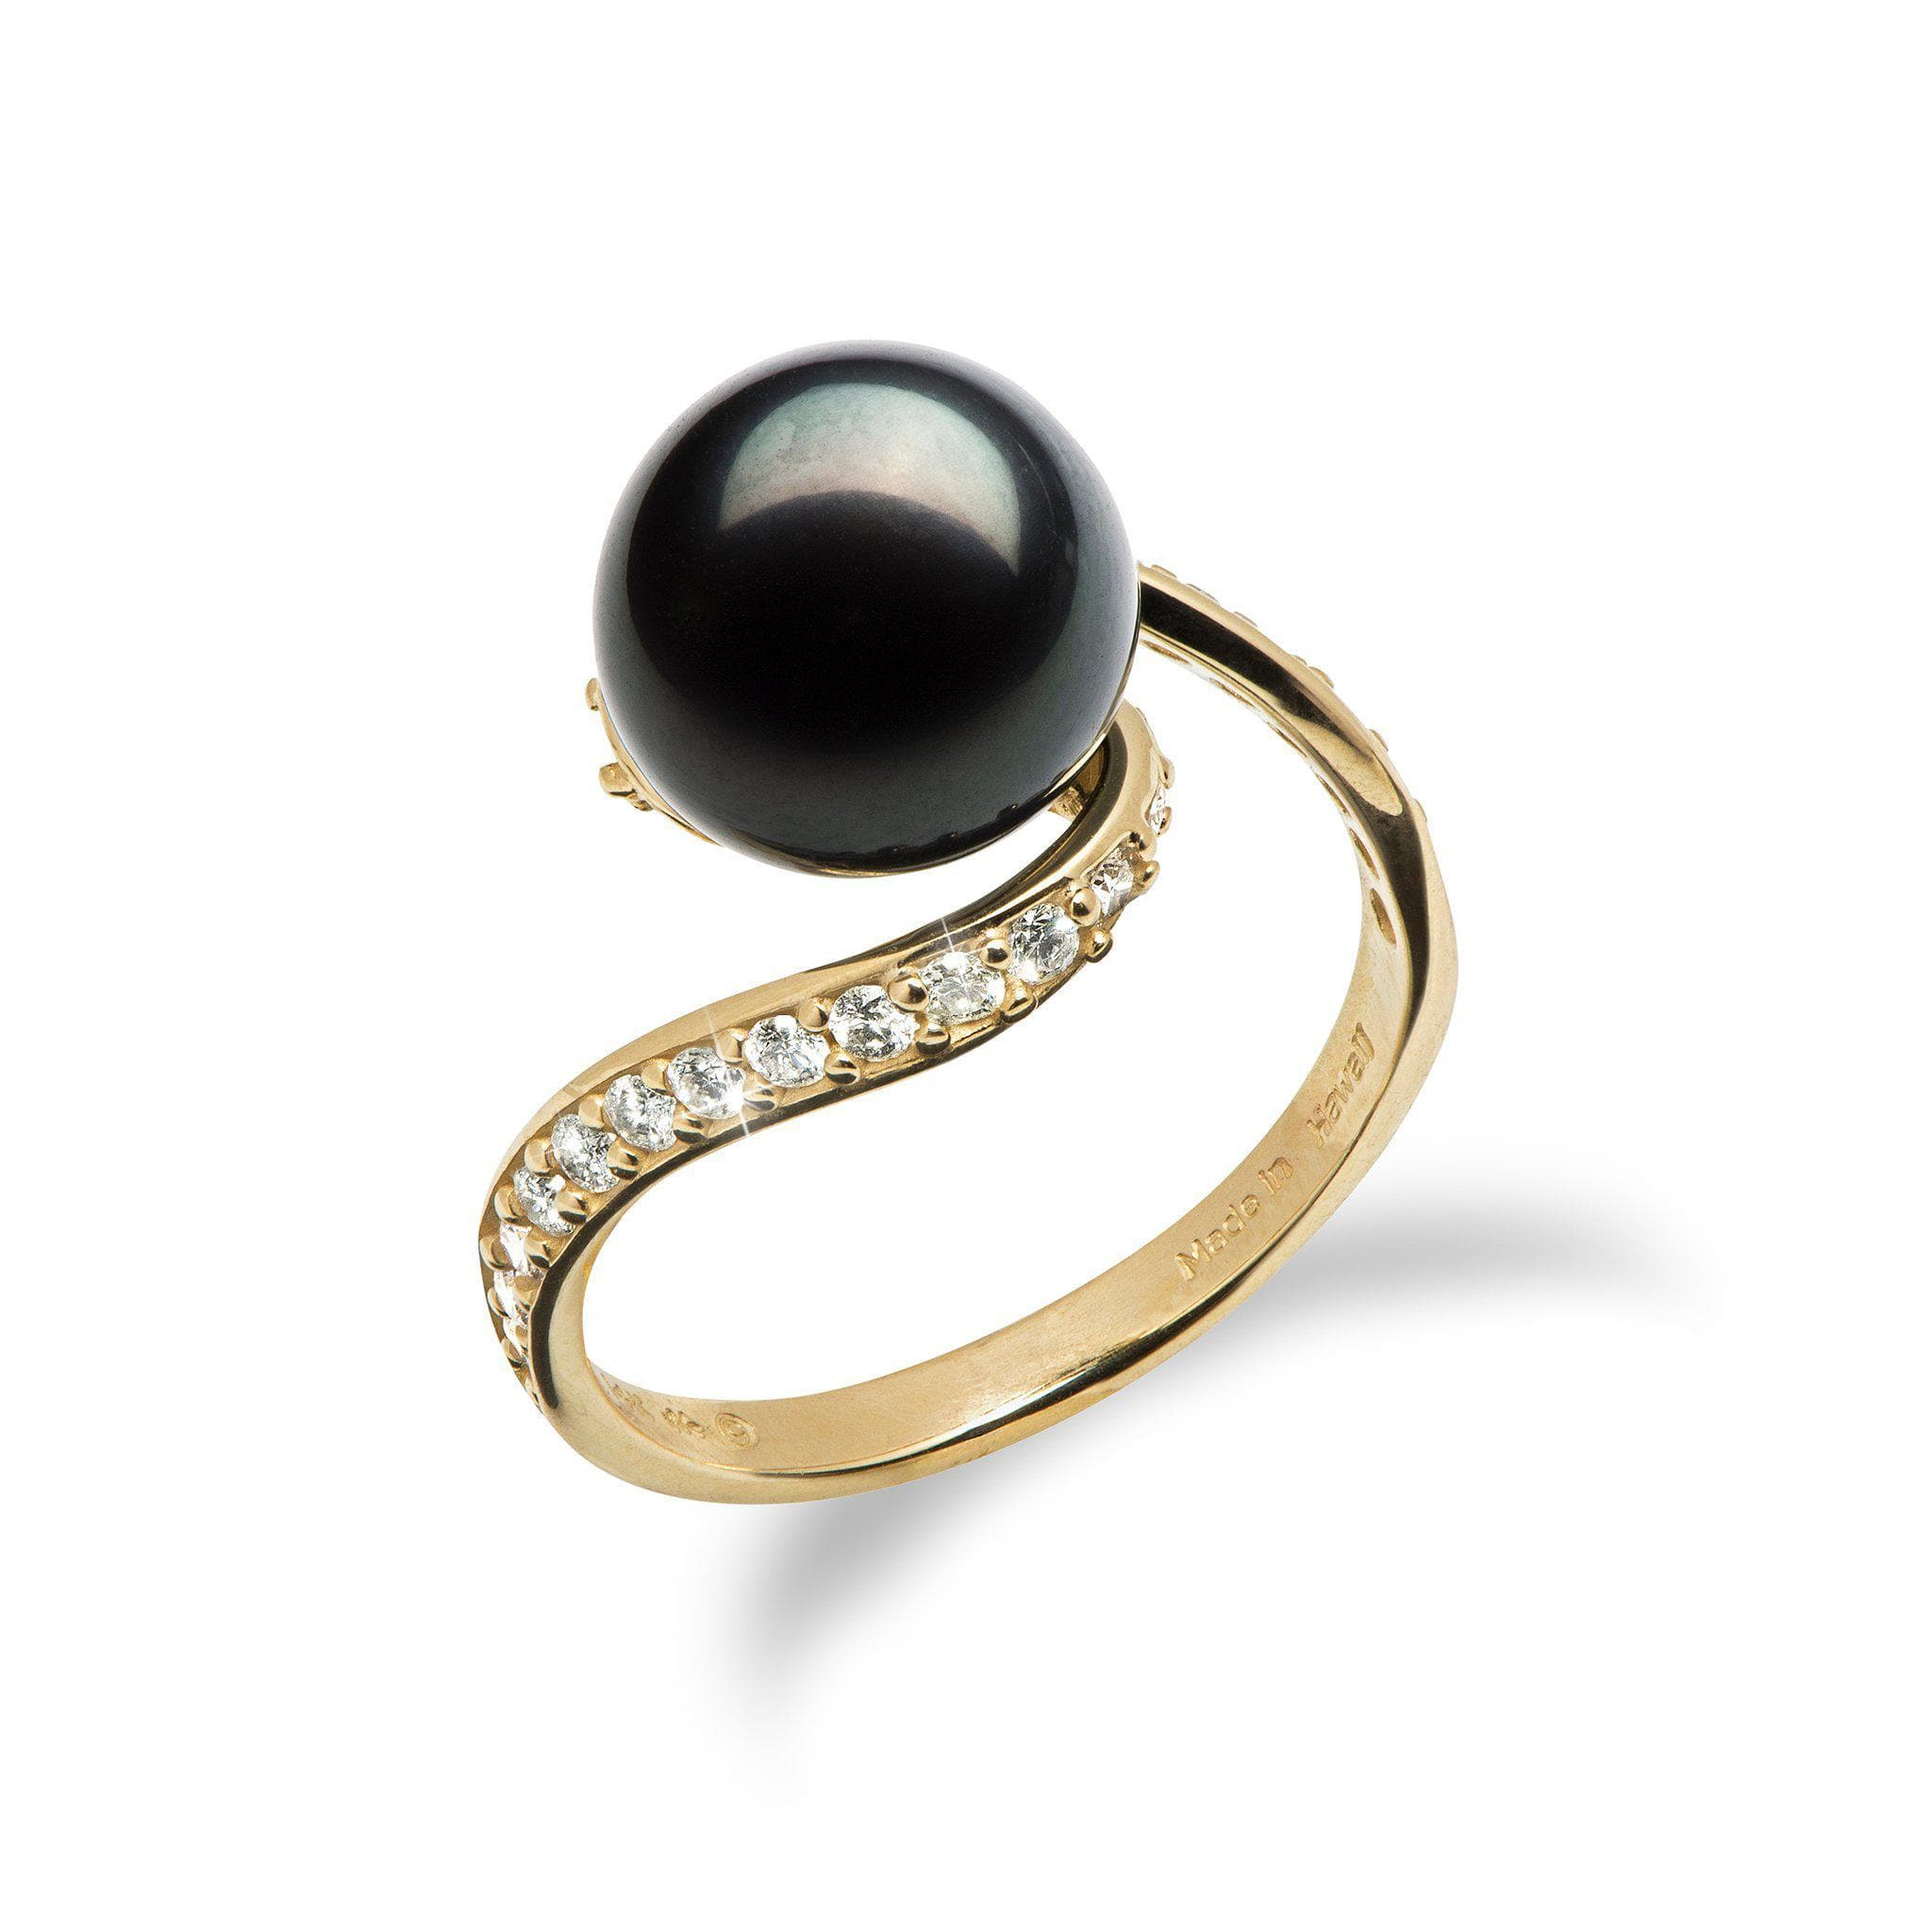 band onyx for diva wedding diamond bulgari gold id jewelry ring j dream rings at bvlgari master sale